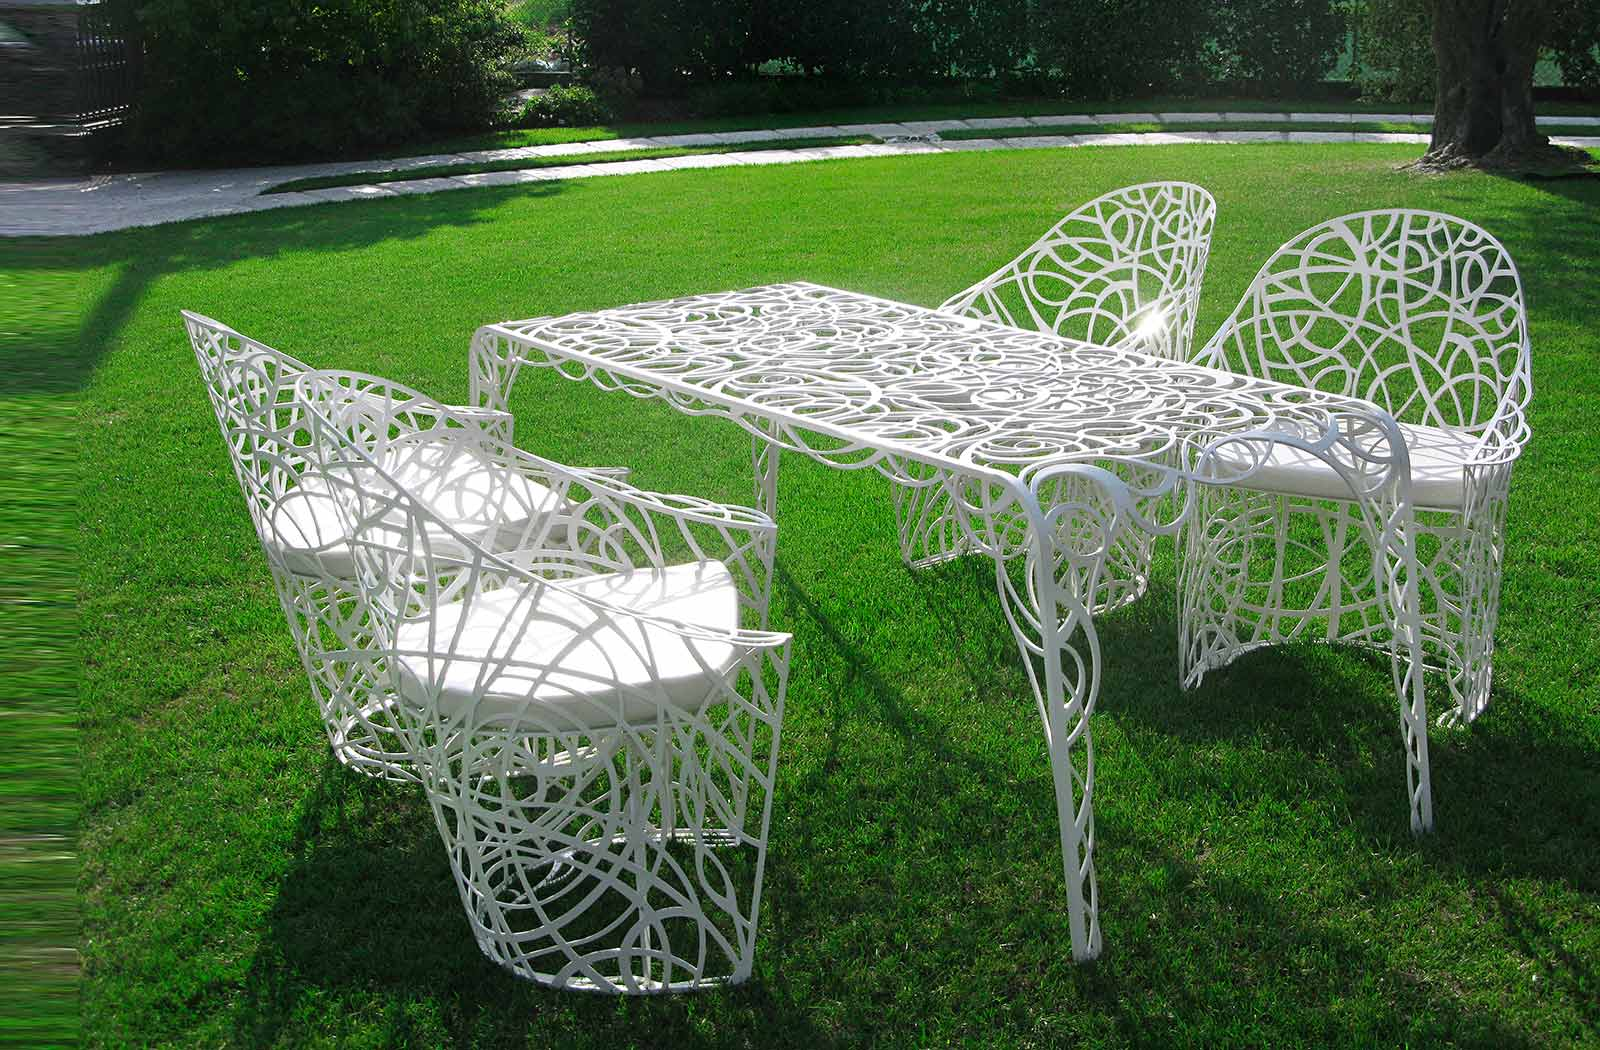 Amazing outdoor furniture radici by de castelli digsdigs for Outdoor garden furniture